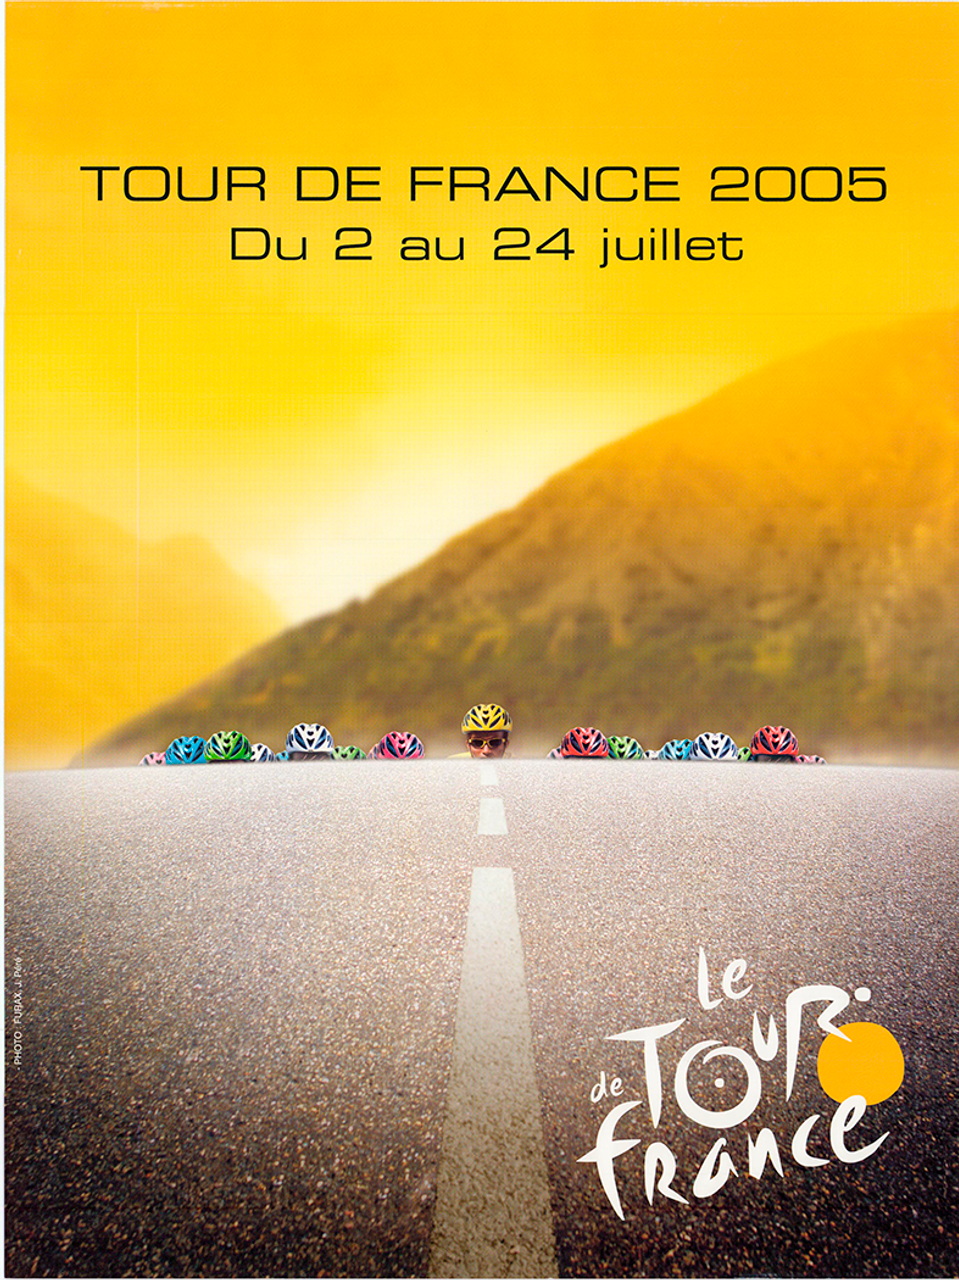 2005 Tour de France Original Vintage Bicycle Poster